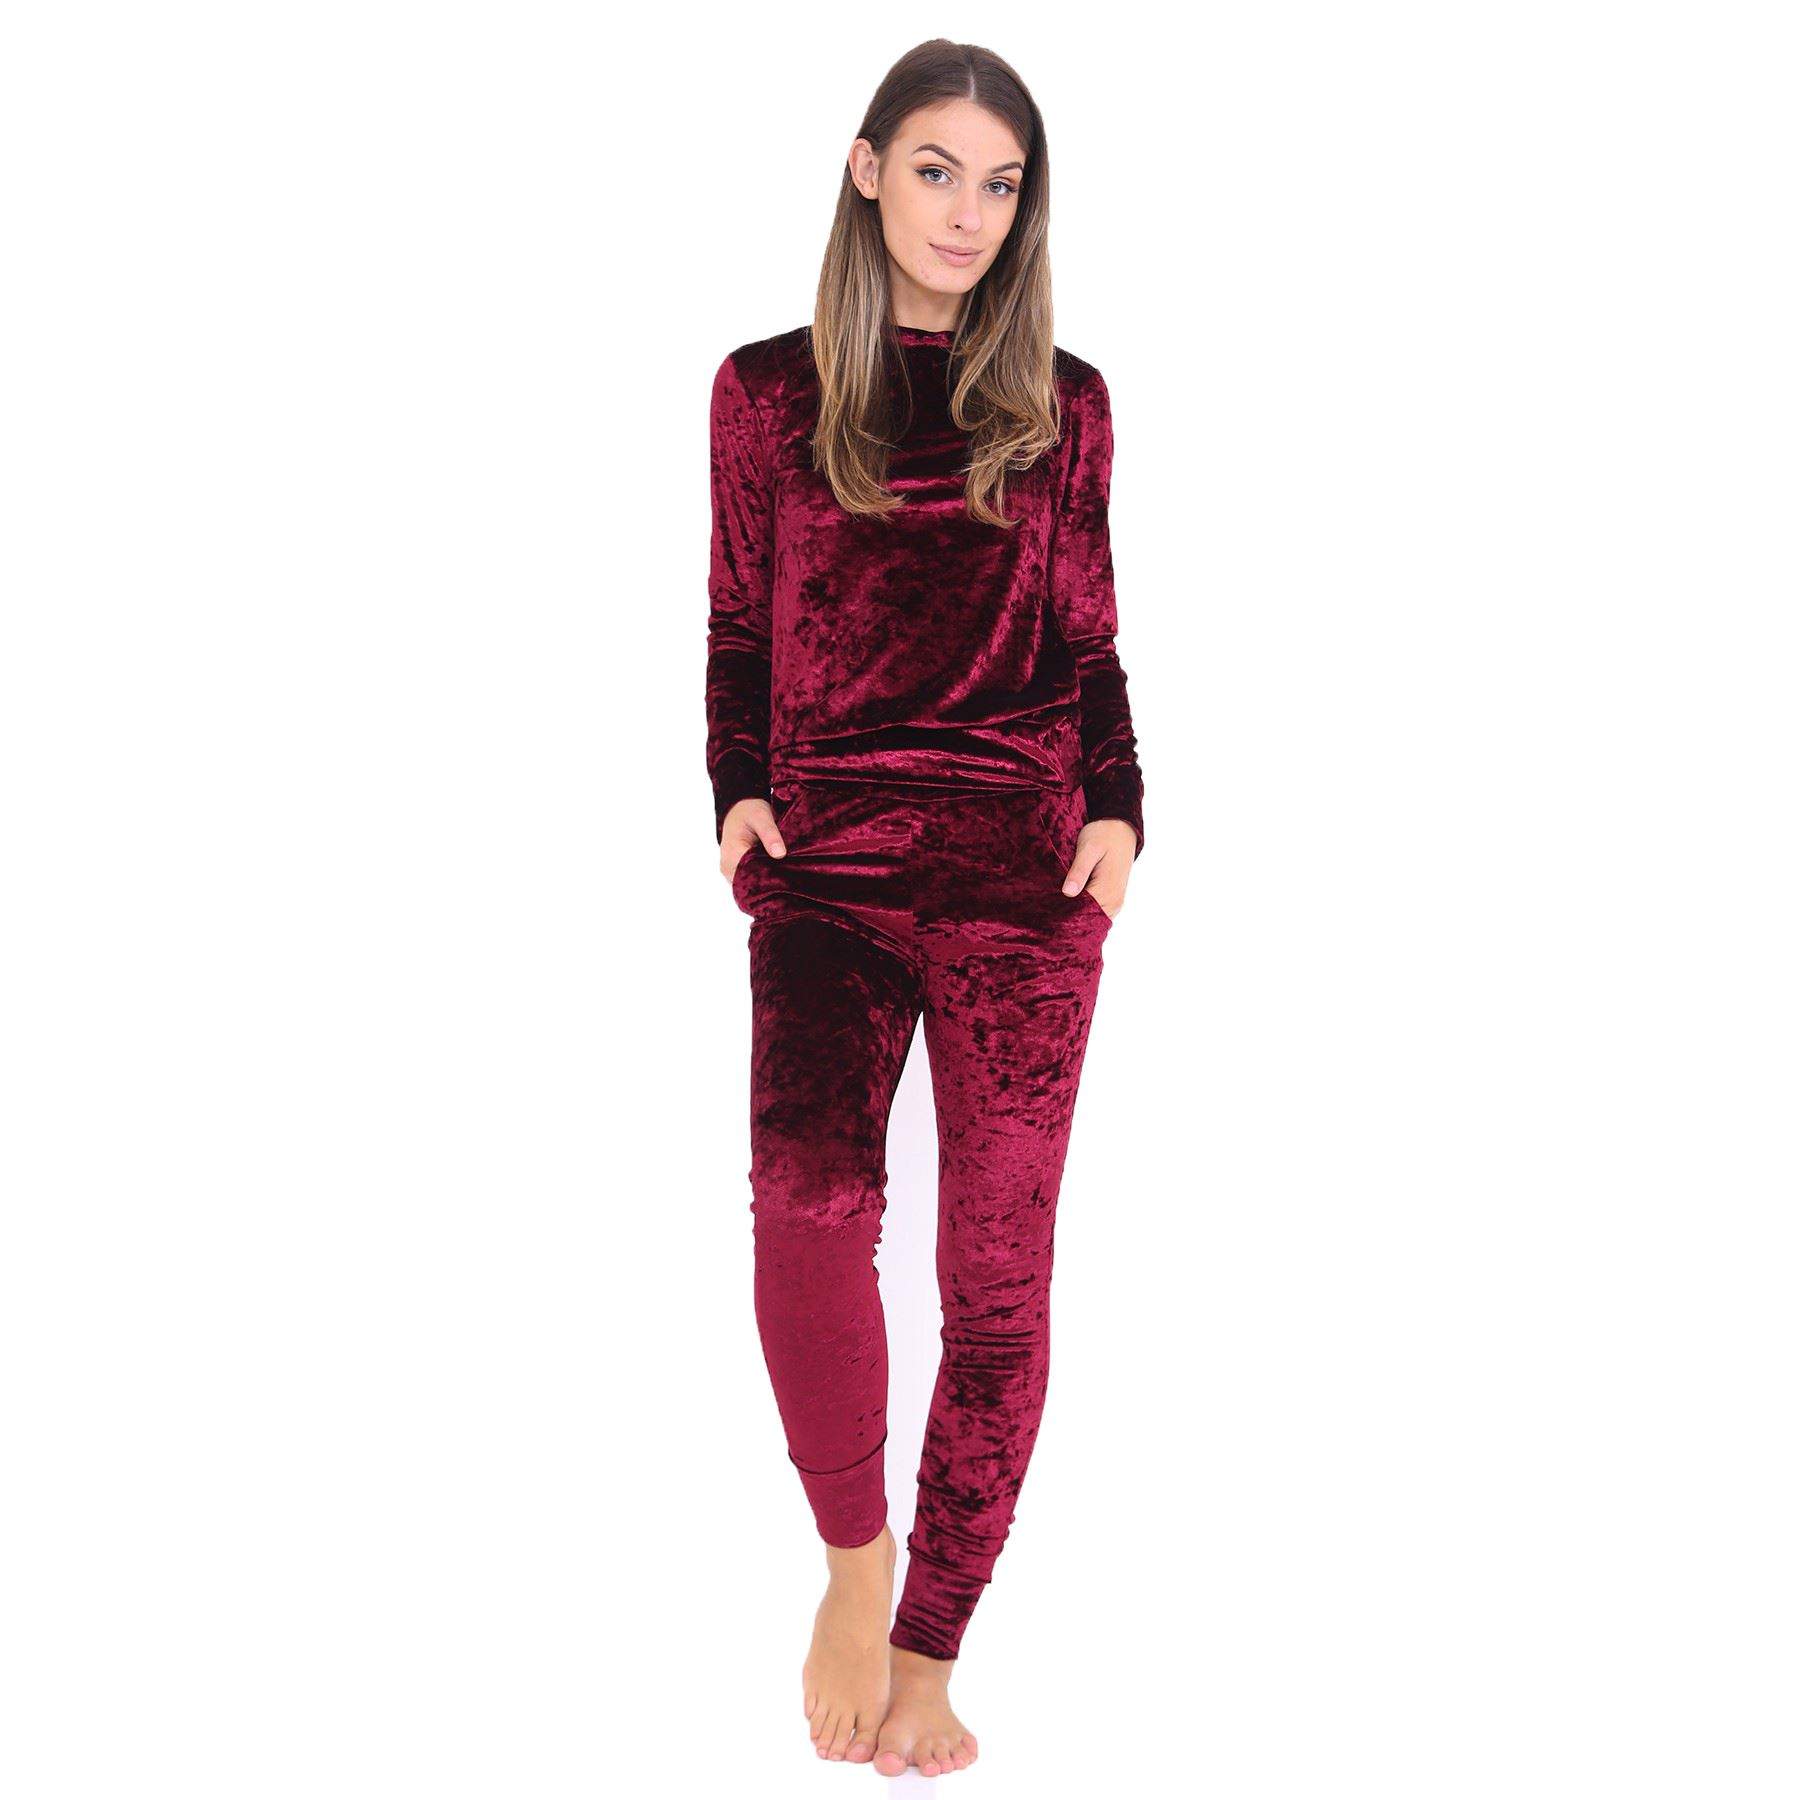 Overstock uses cookies to ensure you get the best experience on our site. If you continue on our site, you consent to the use of such cookies. Learn more. OK Loungewear. Clothing & Shoes / Women White Mark Women's Velour Lounge Suit. 32 Reviews. More Options. Quick View.